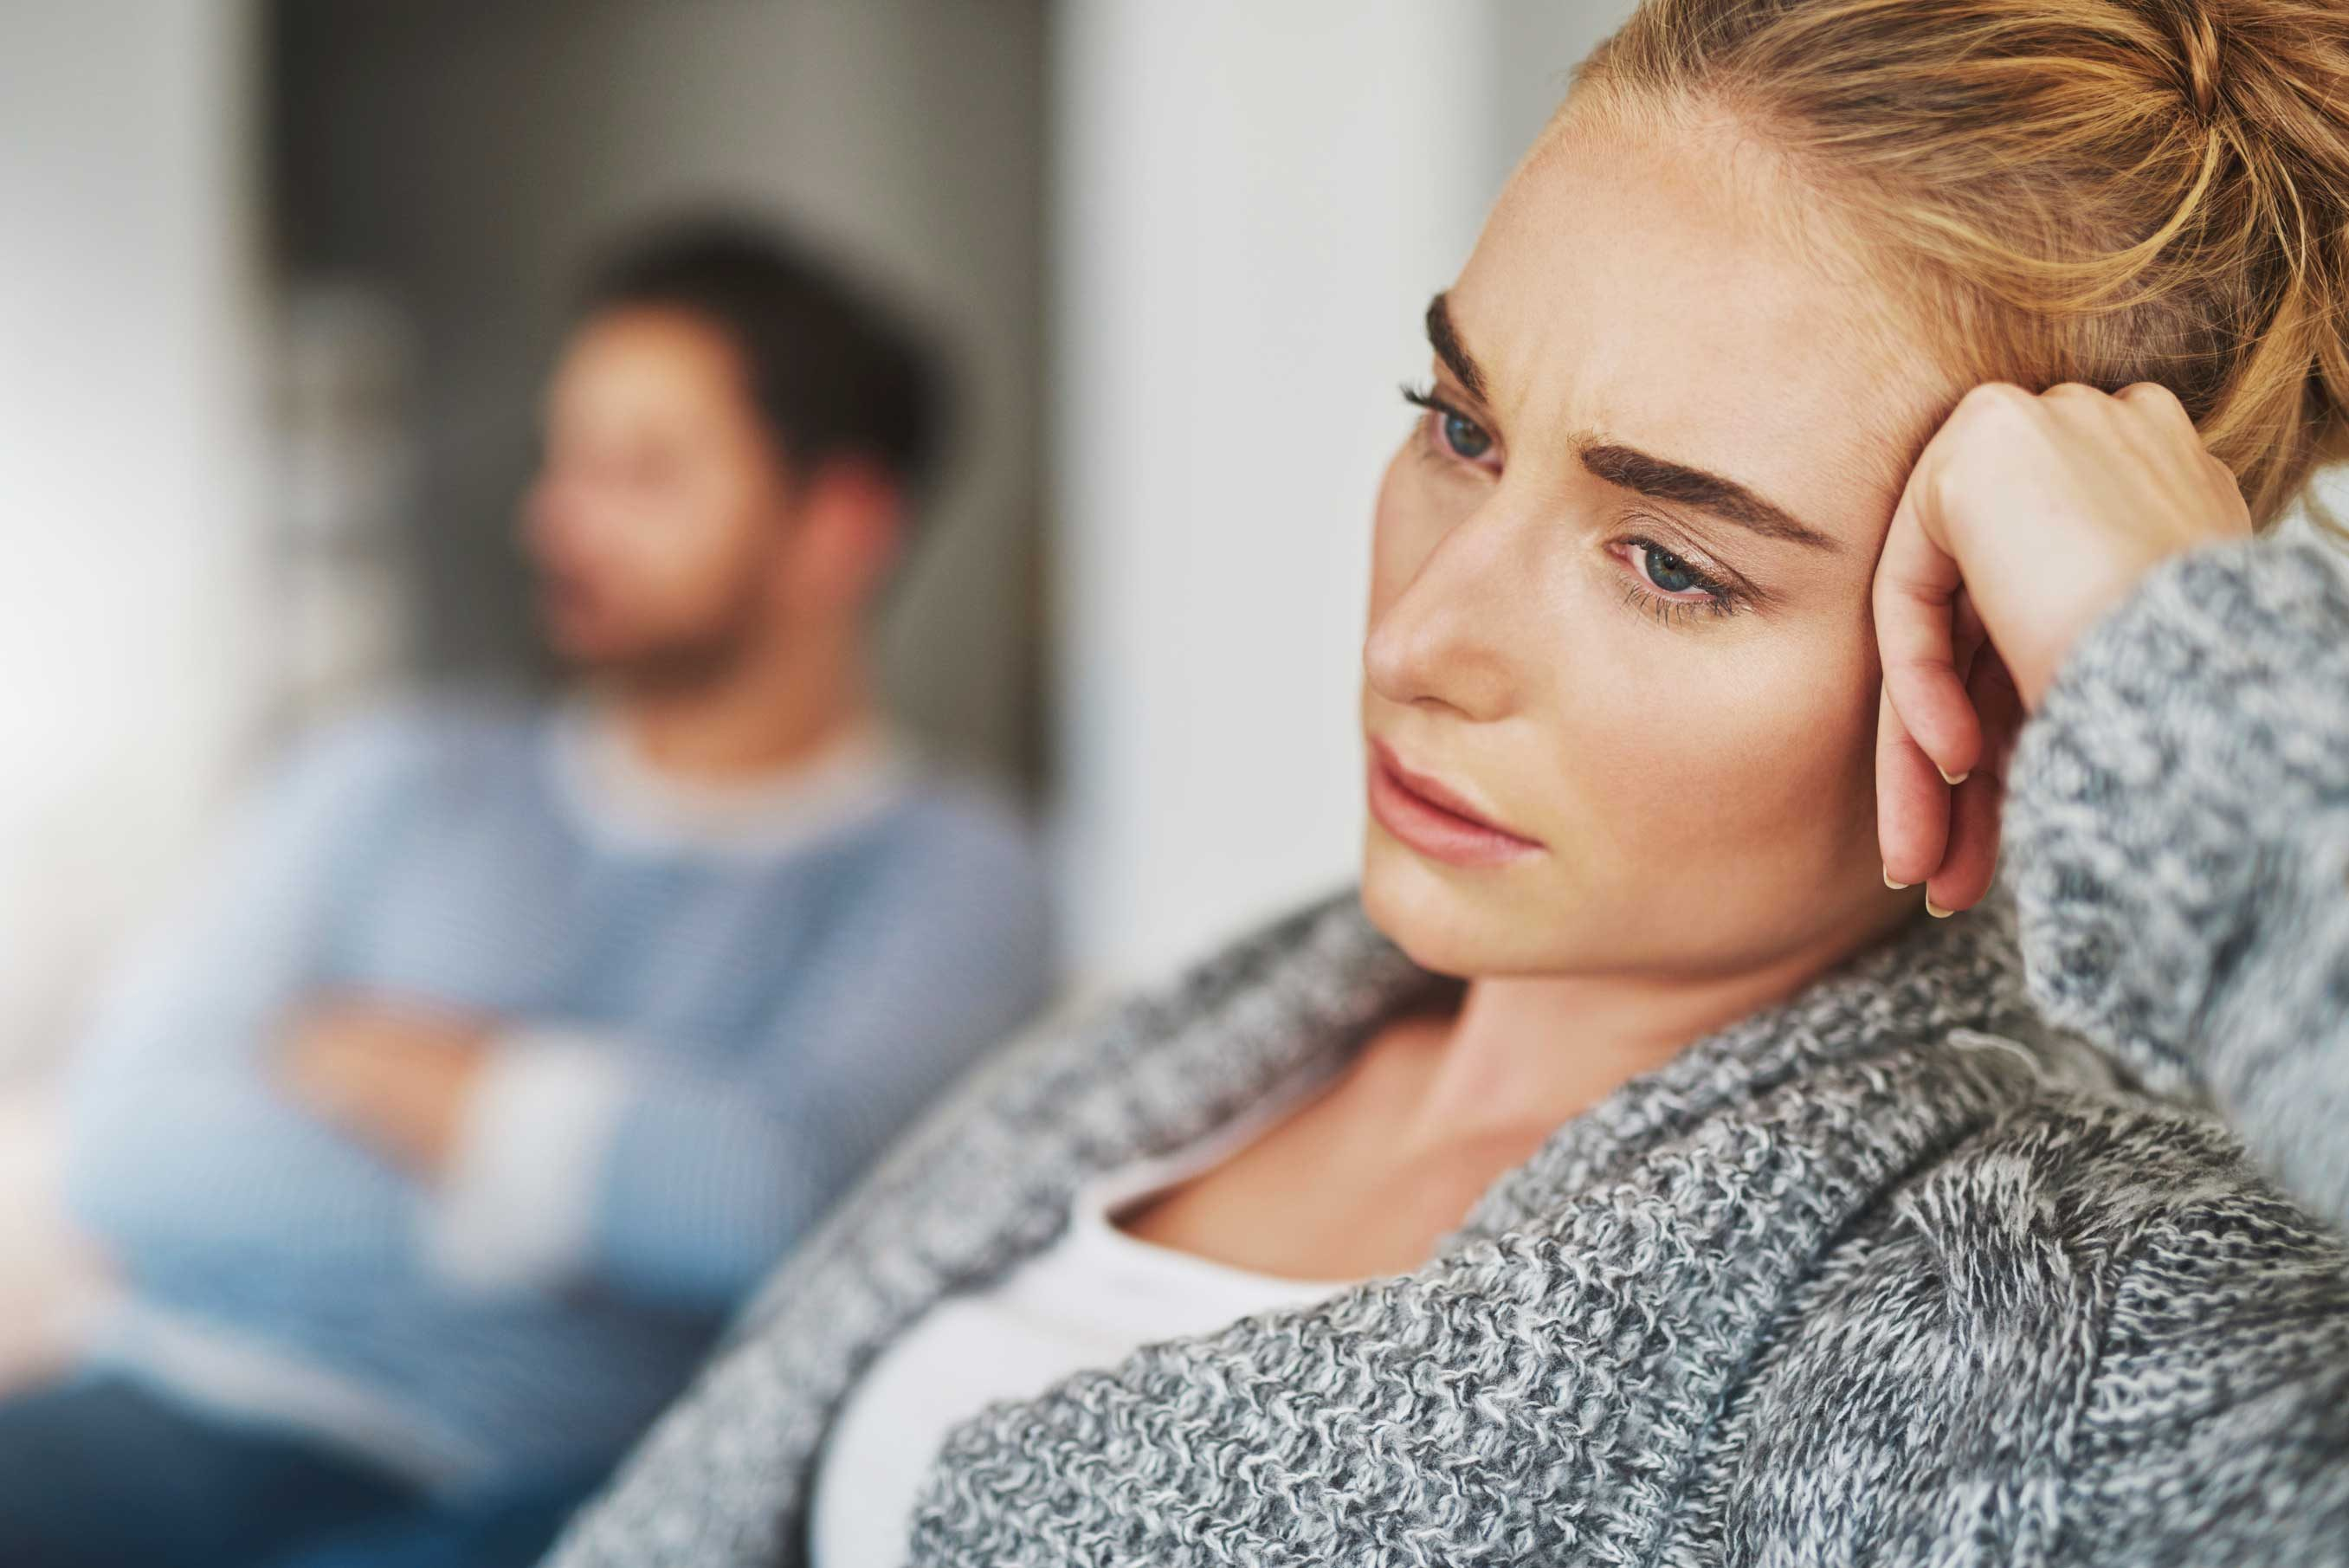 9 Silent Signs Your Partner Is Emotionally Abusive